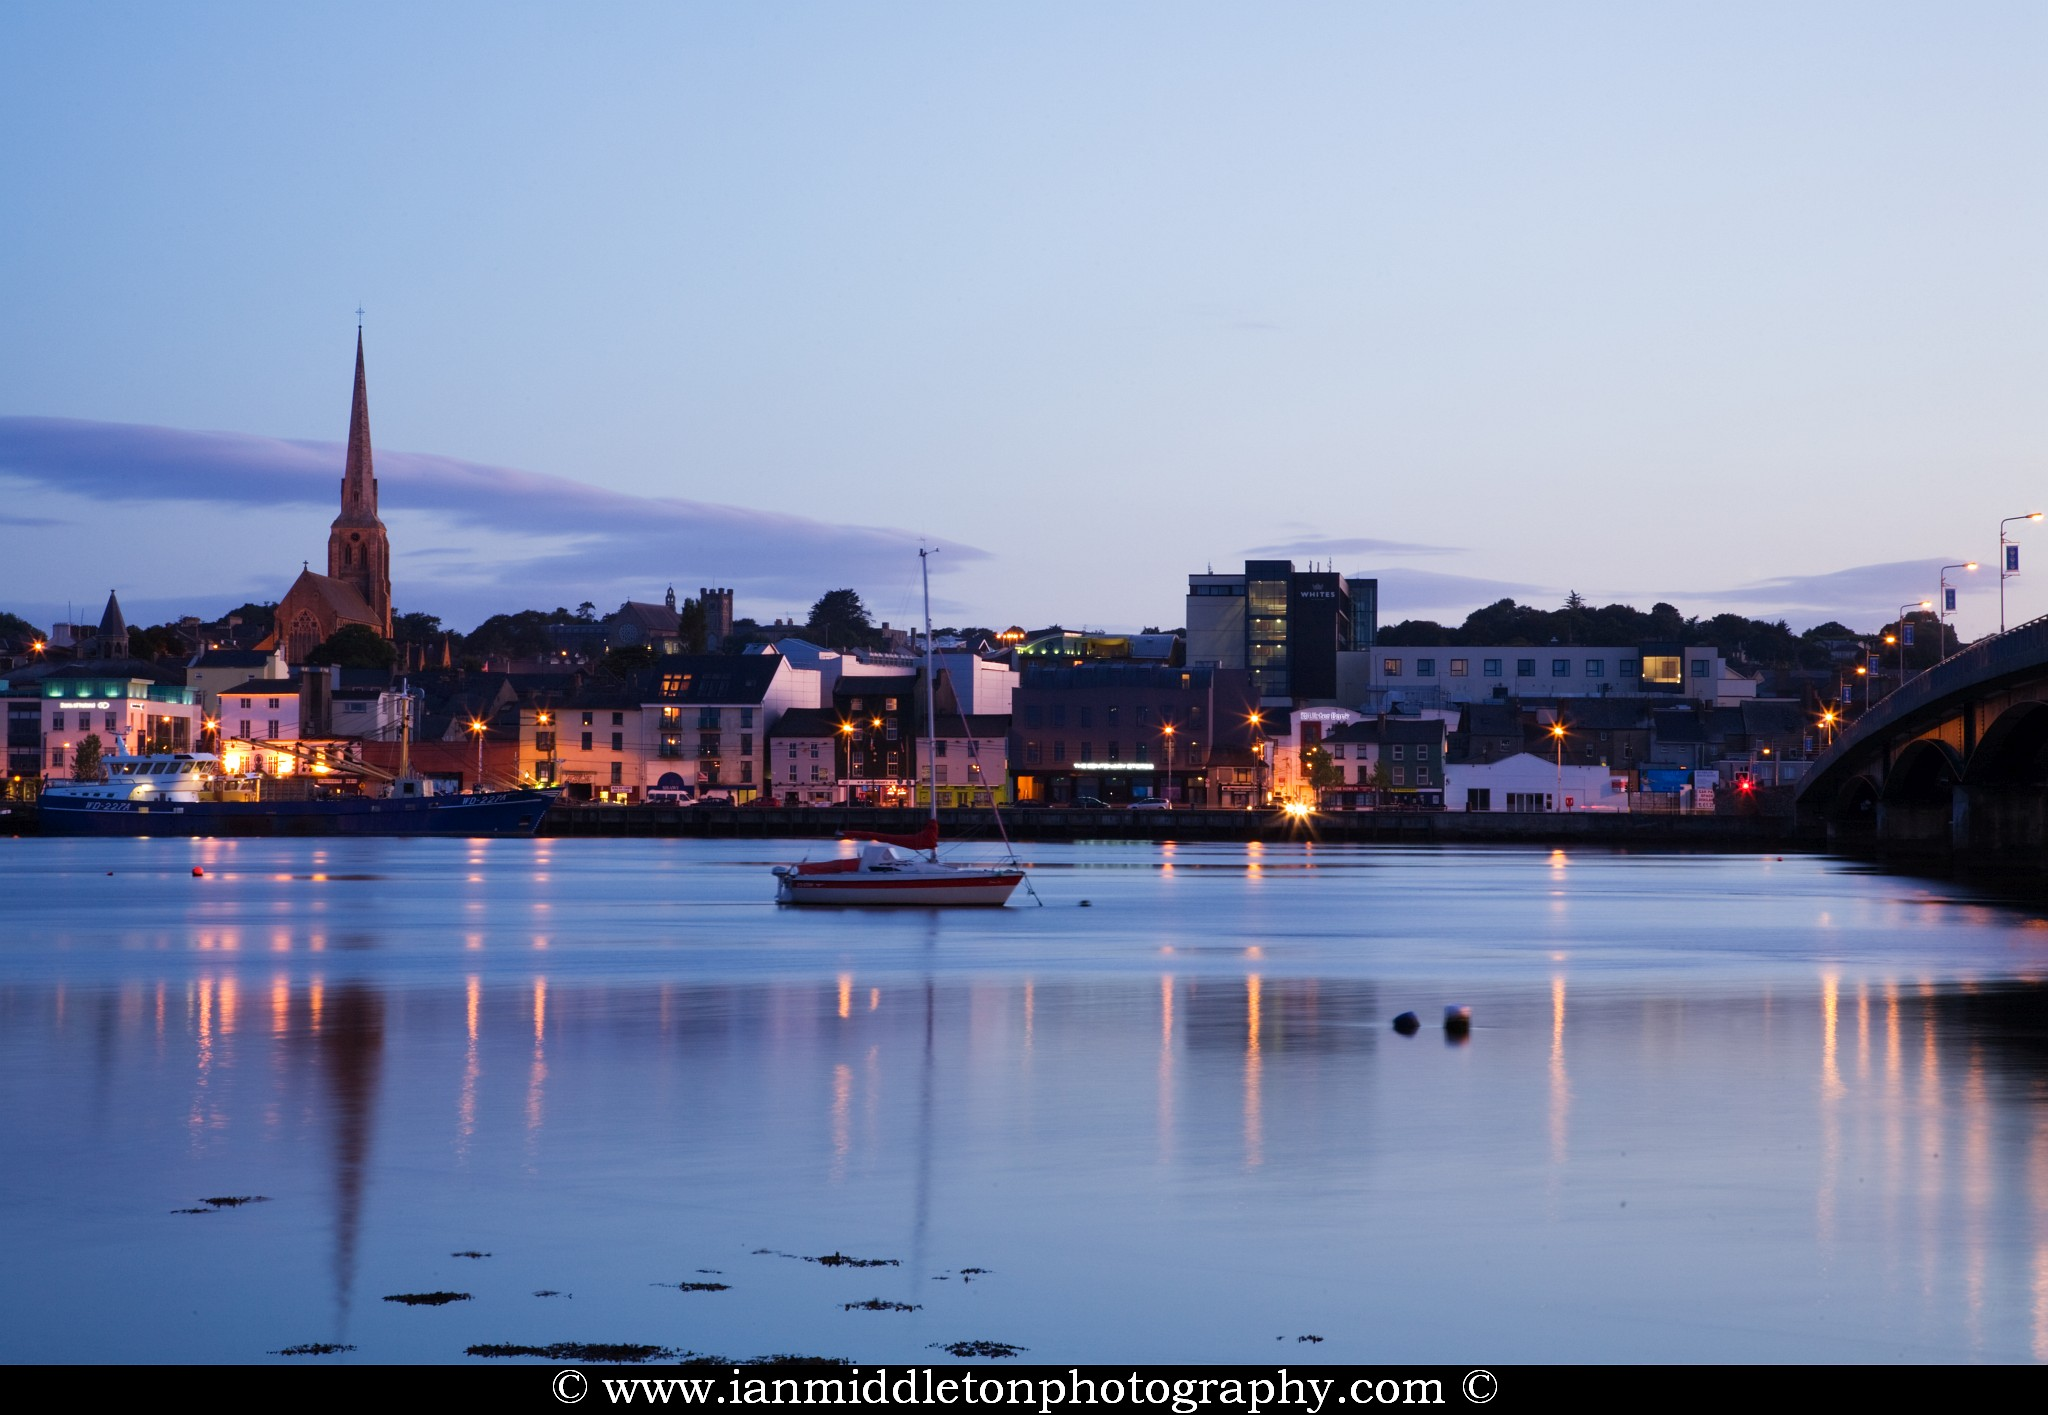 Wexford Harbour at sundown, County Wexford, Republic of Ireland